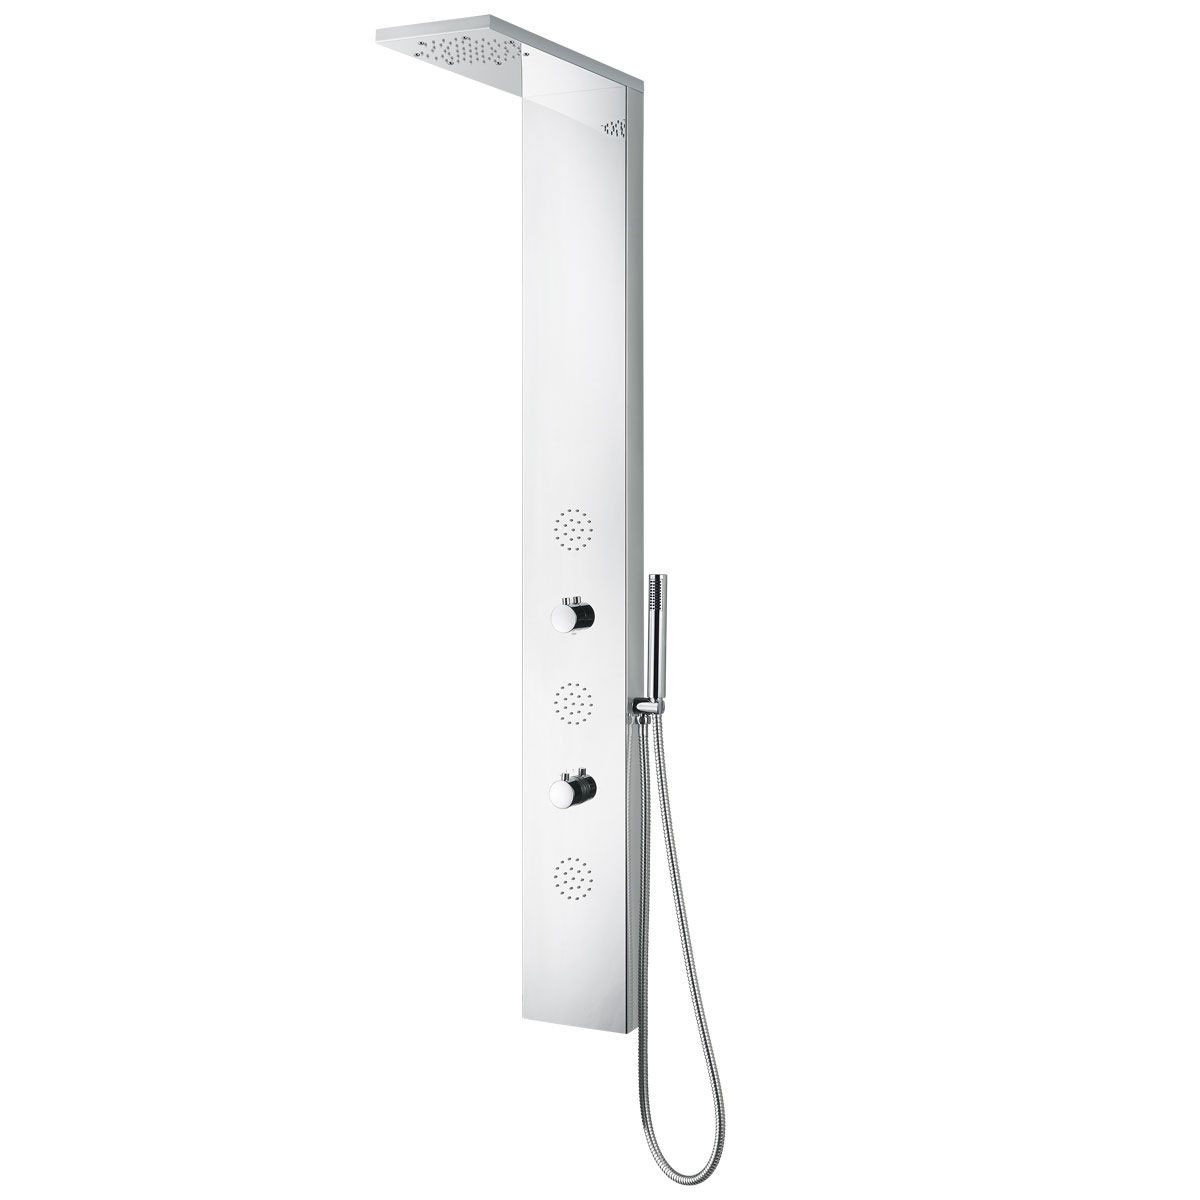 Chrome Stainless Steel Thermostatic Shower Panel System (JX-9813)